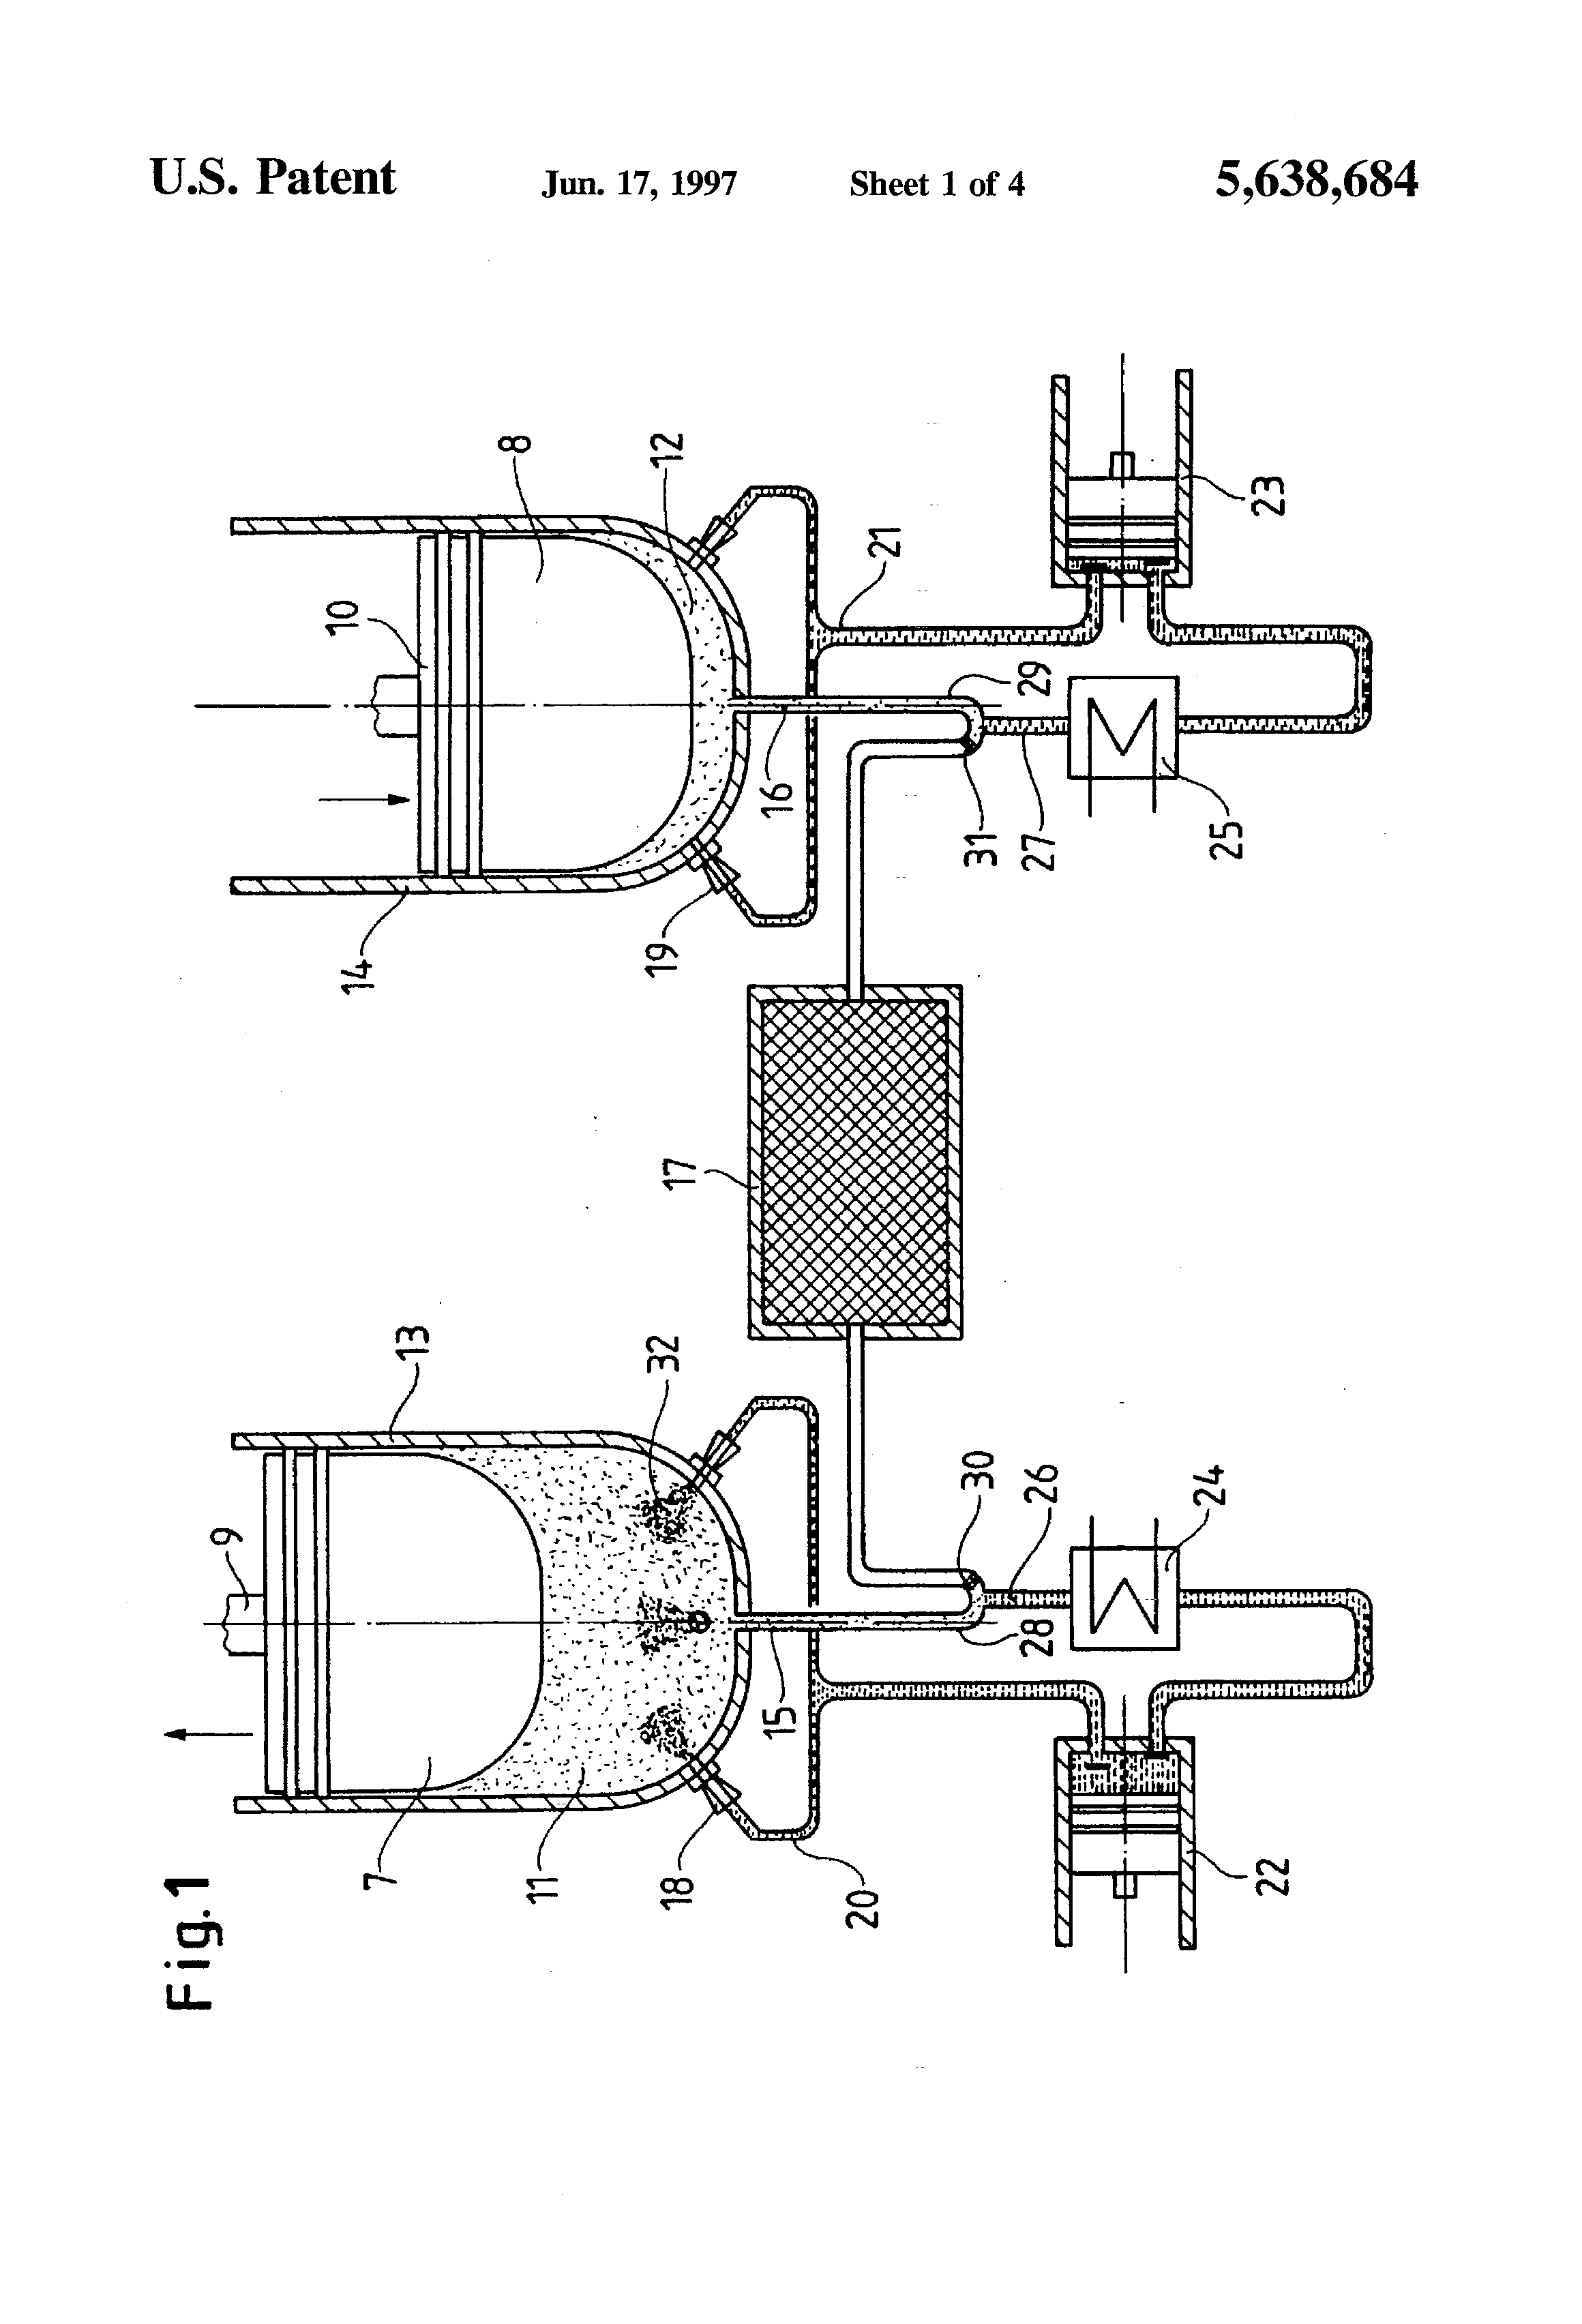 stirling engine with injection of heat transfer medium us 5638684 a patent  drawing